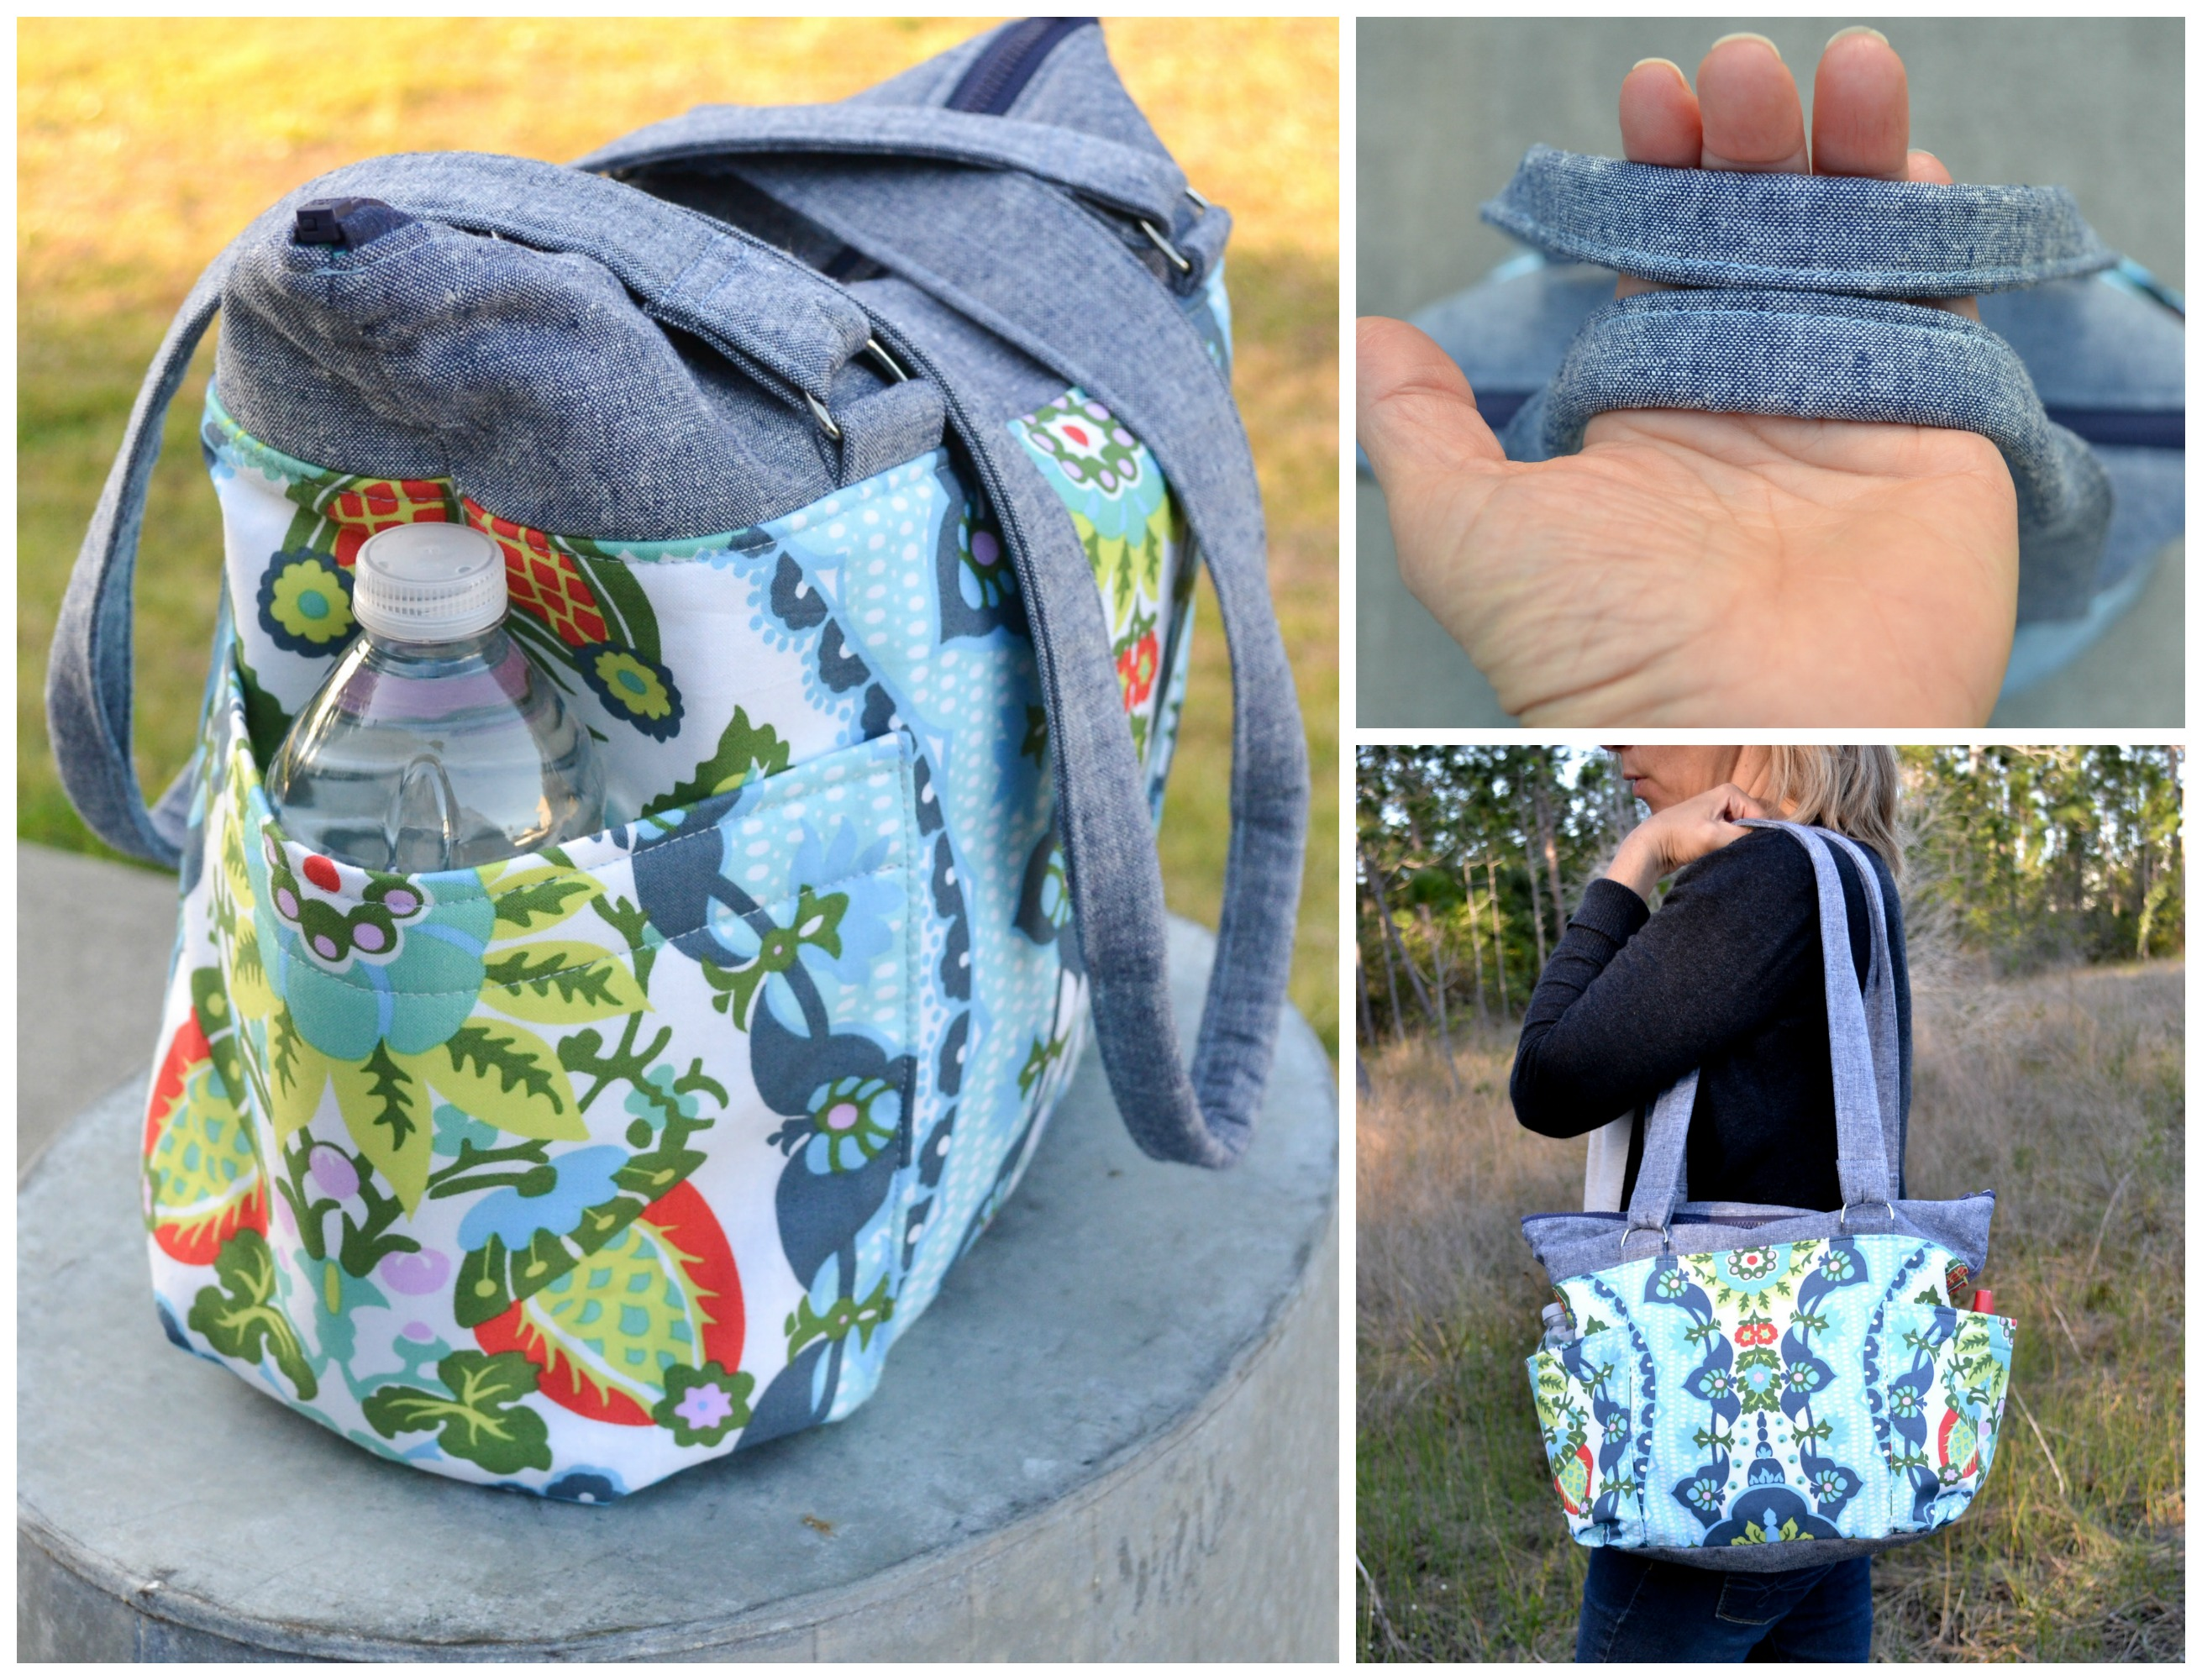 Diy Diaper Bag Tutorial Sew A Medium Sized Diaper Bag With Plenty